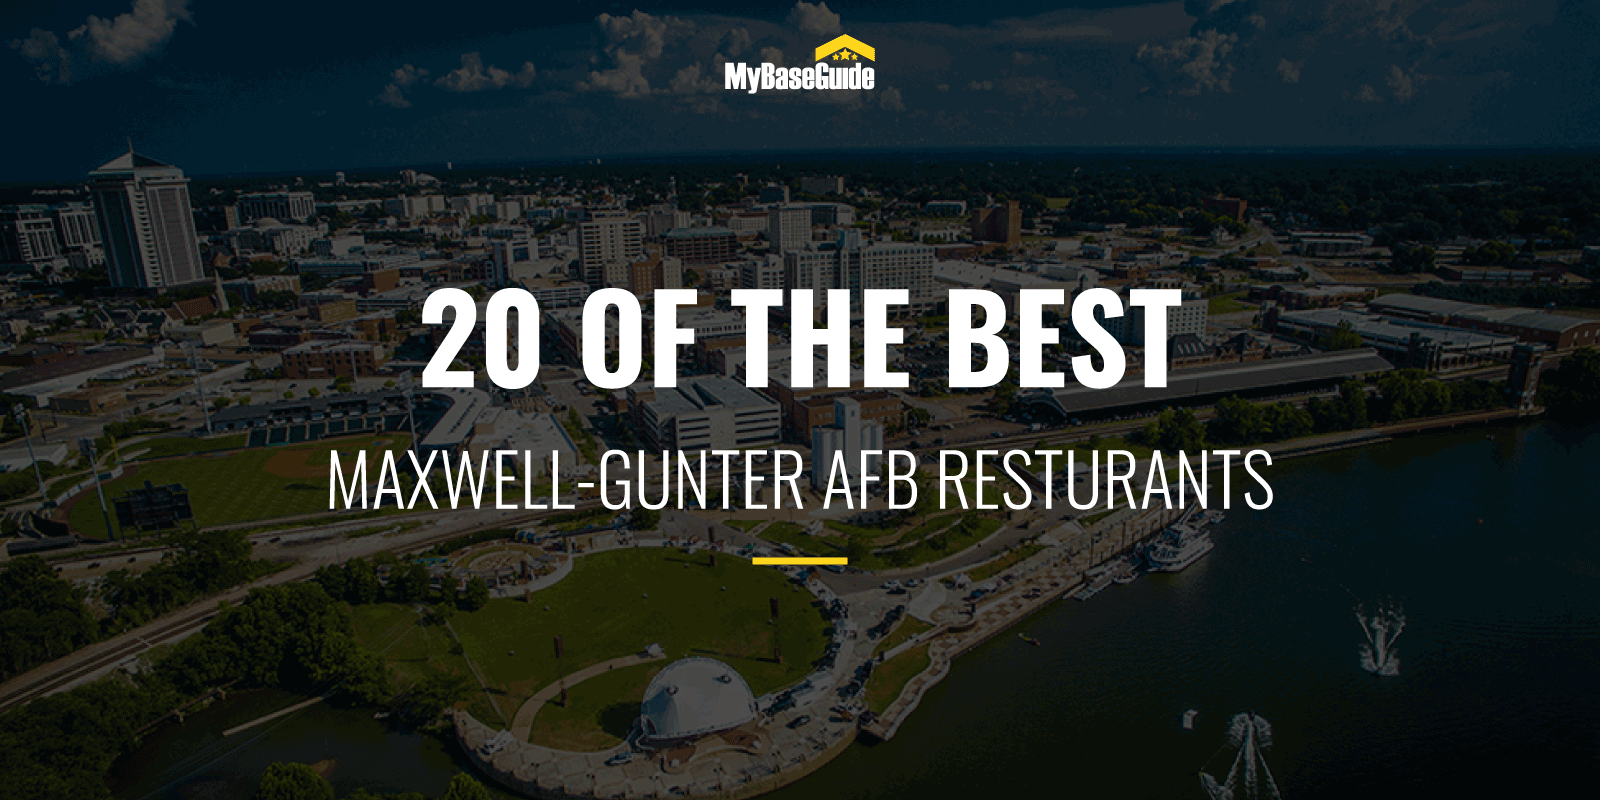 20 of the Best Maxwell-Gunter AFB Restaurants